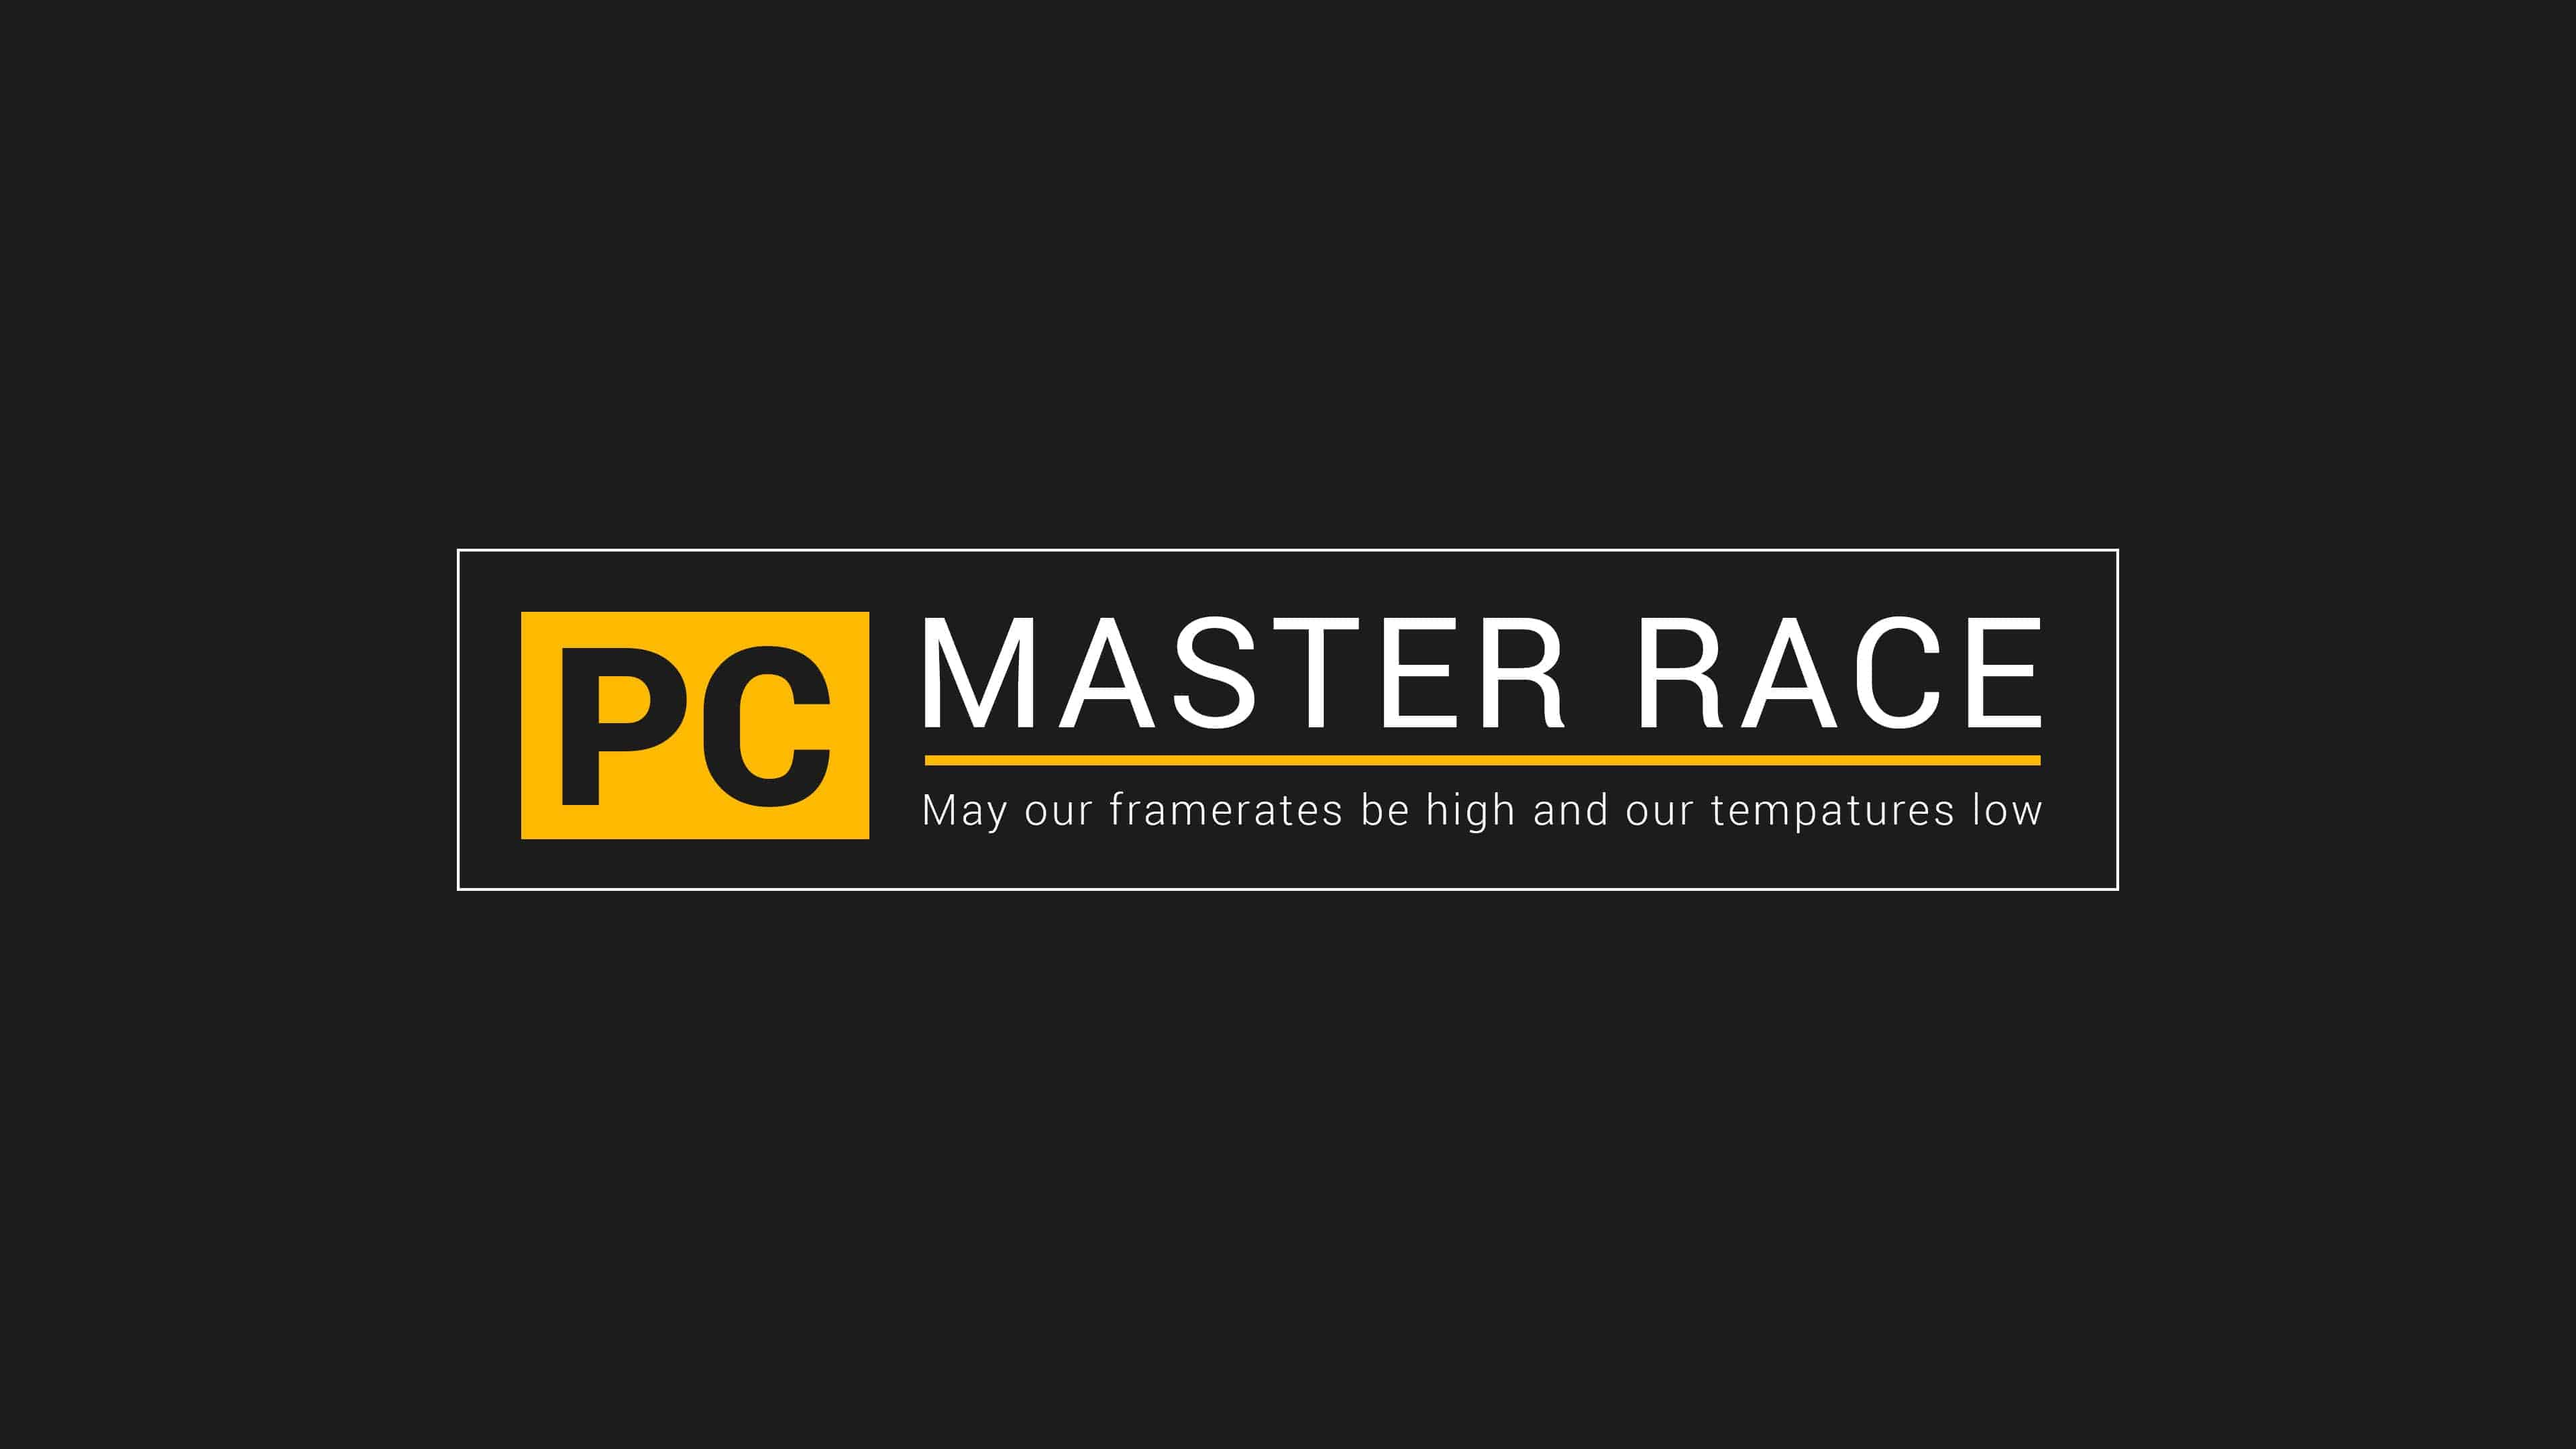 pc master race wallpaper - photo #16